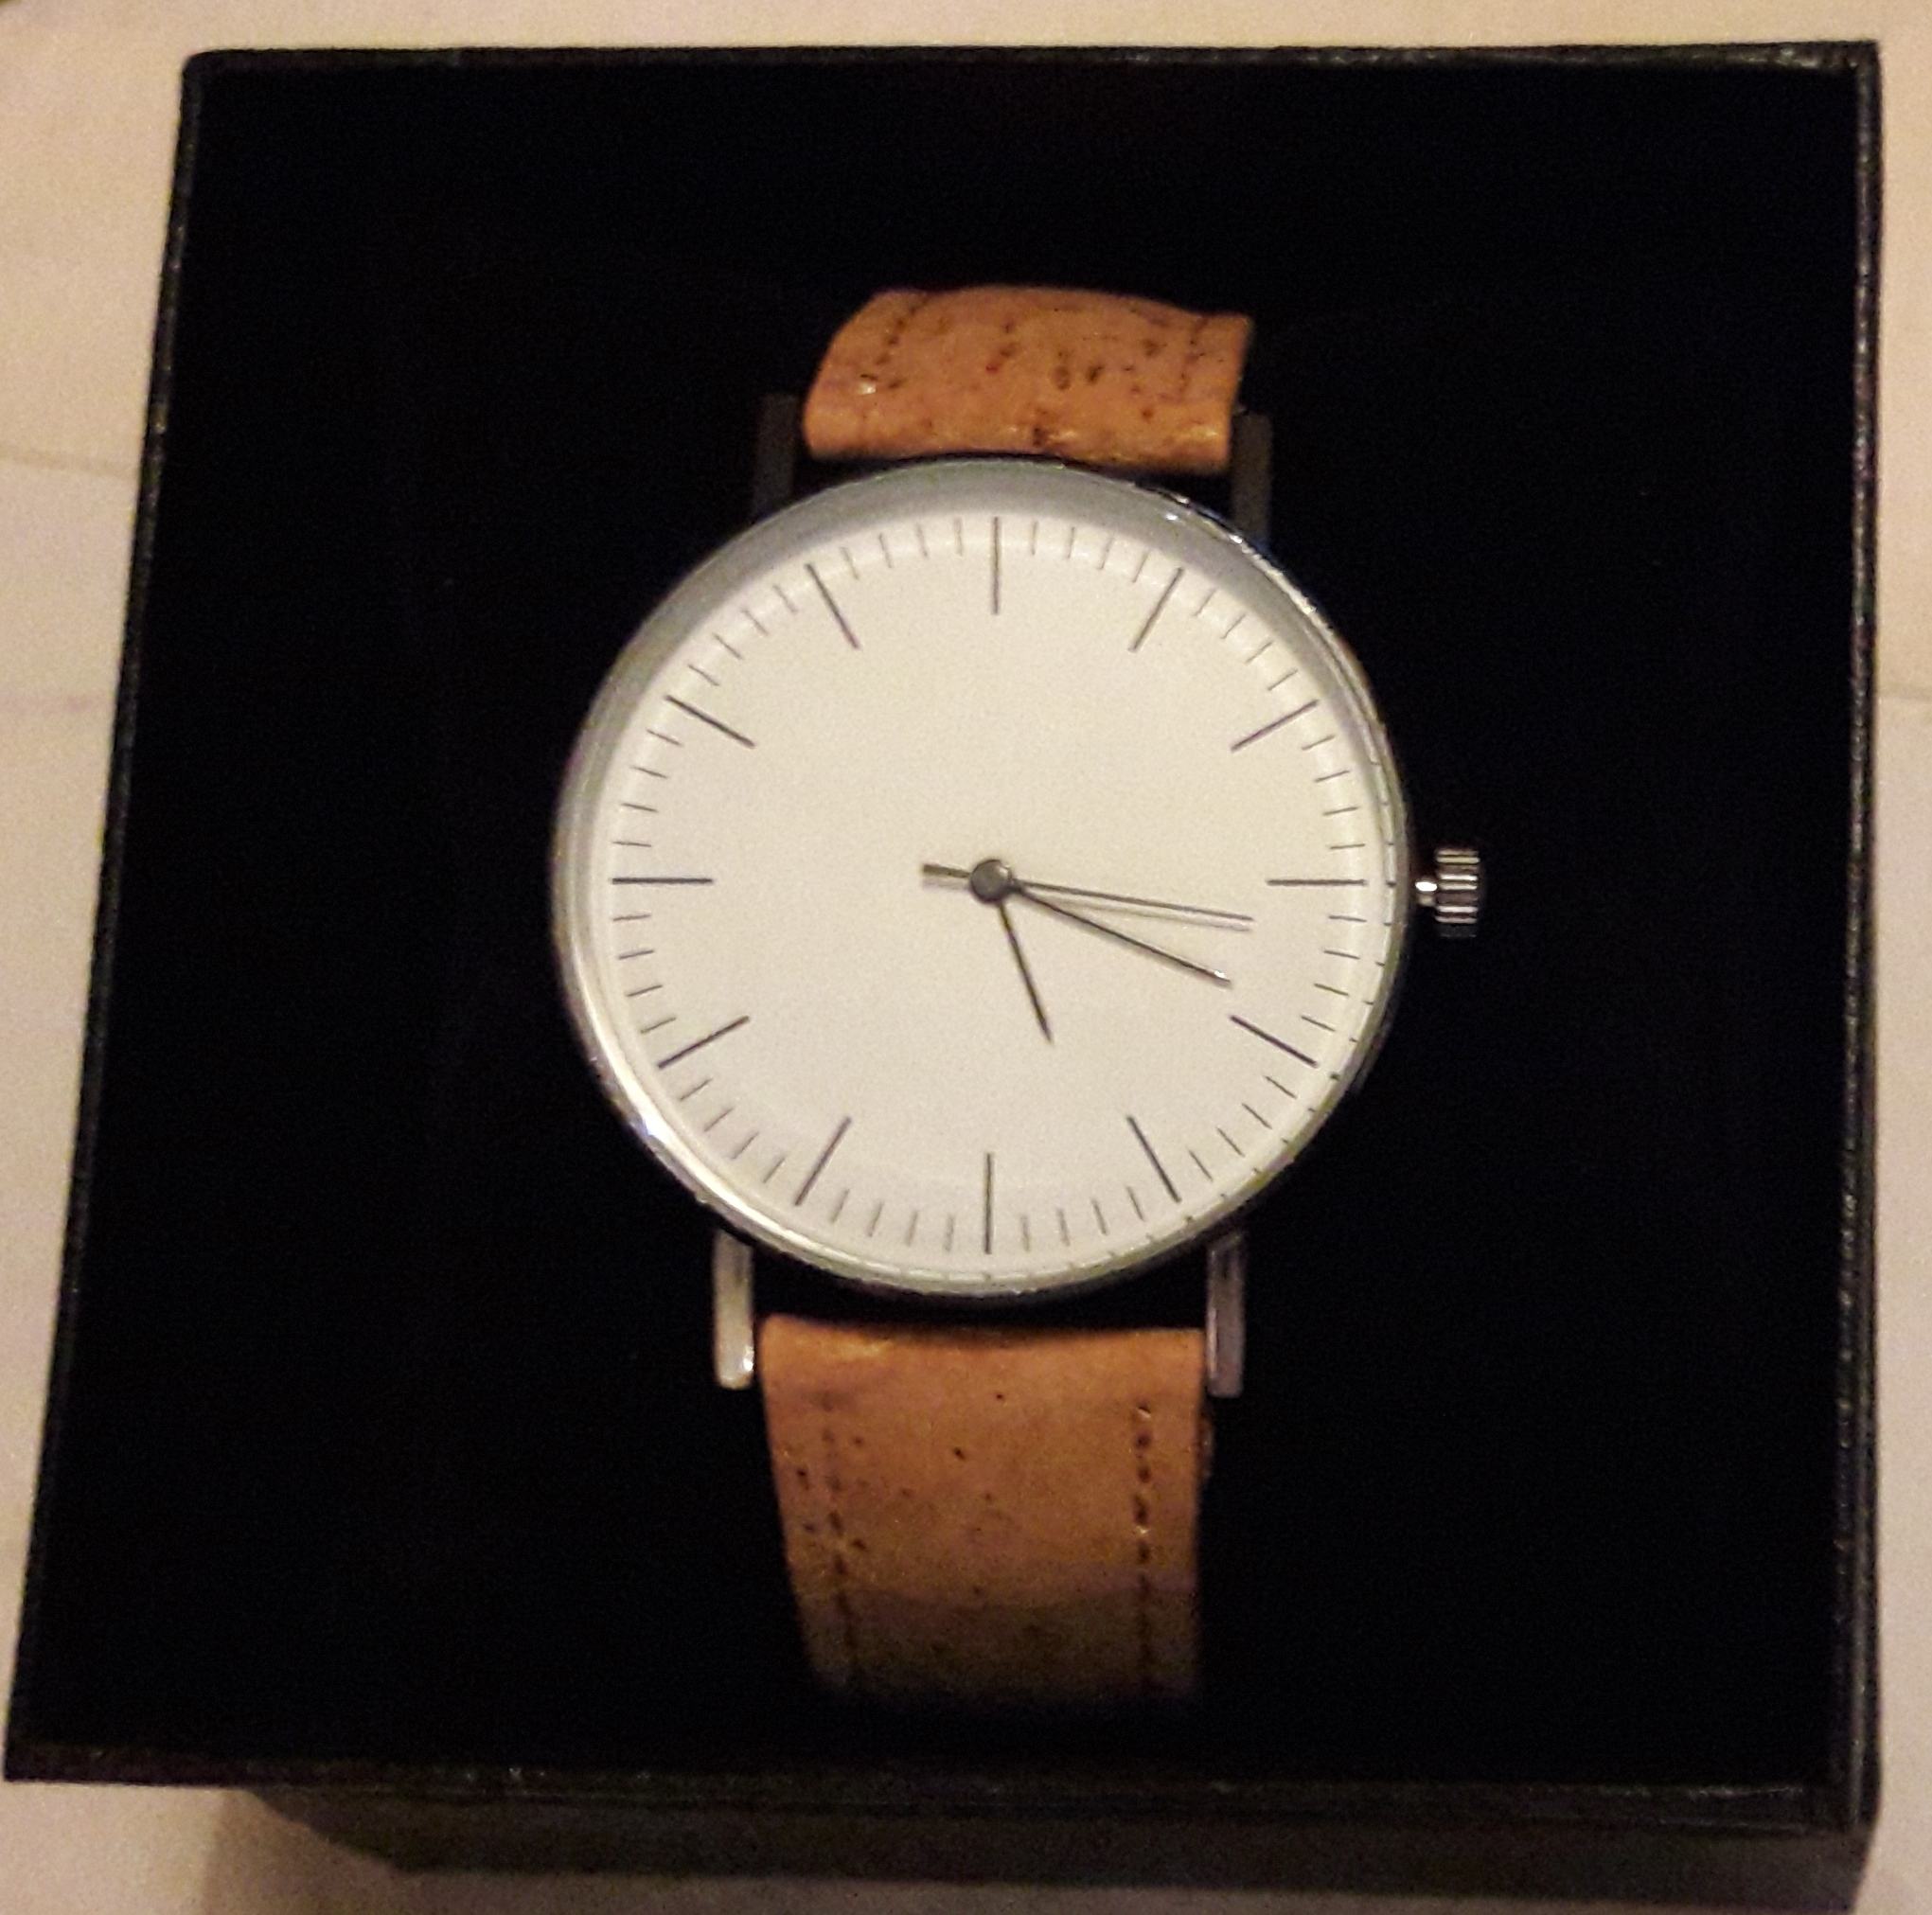 watch zeno bauhaus basel watches product flat quartz